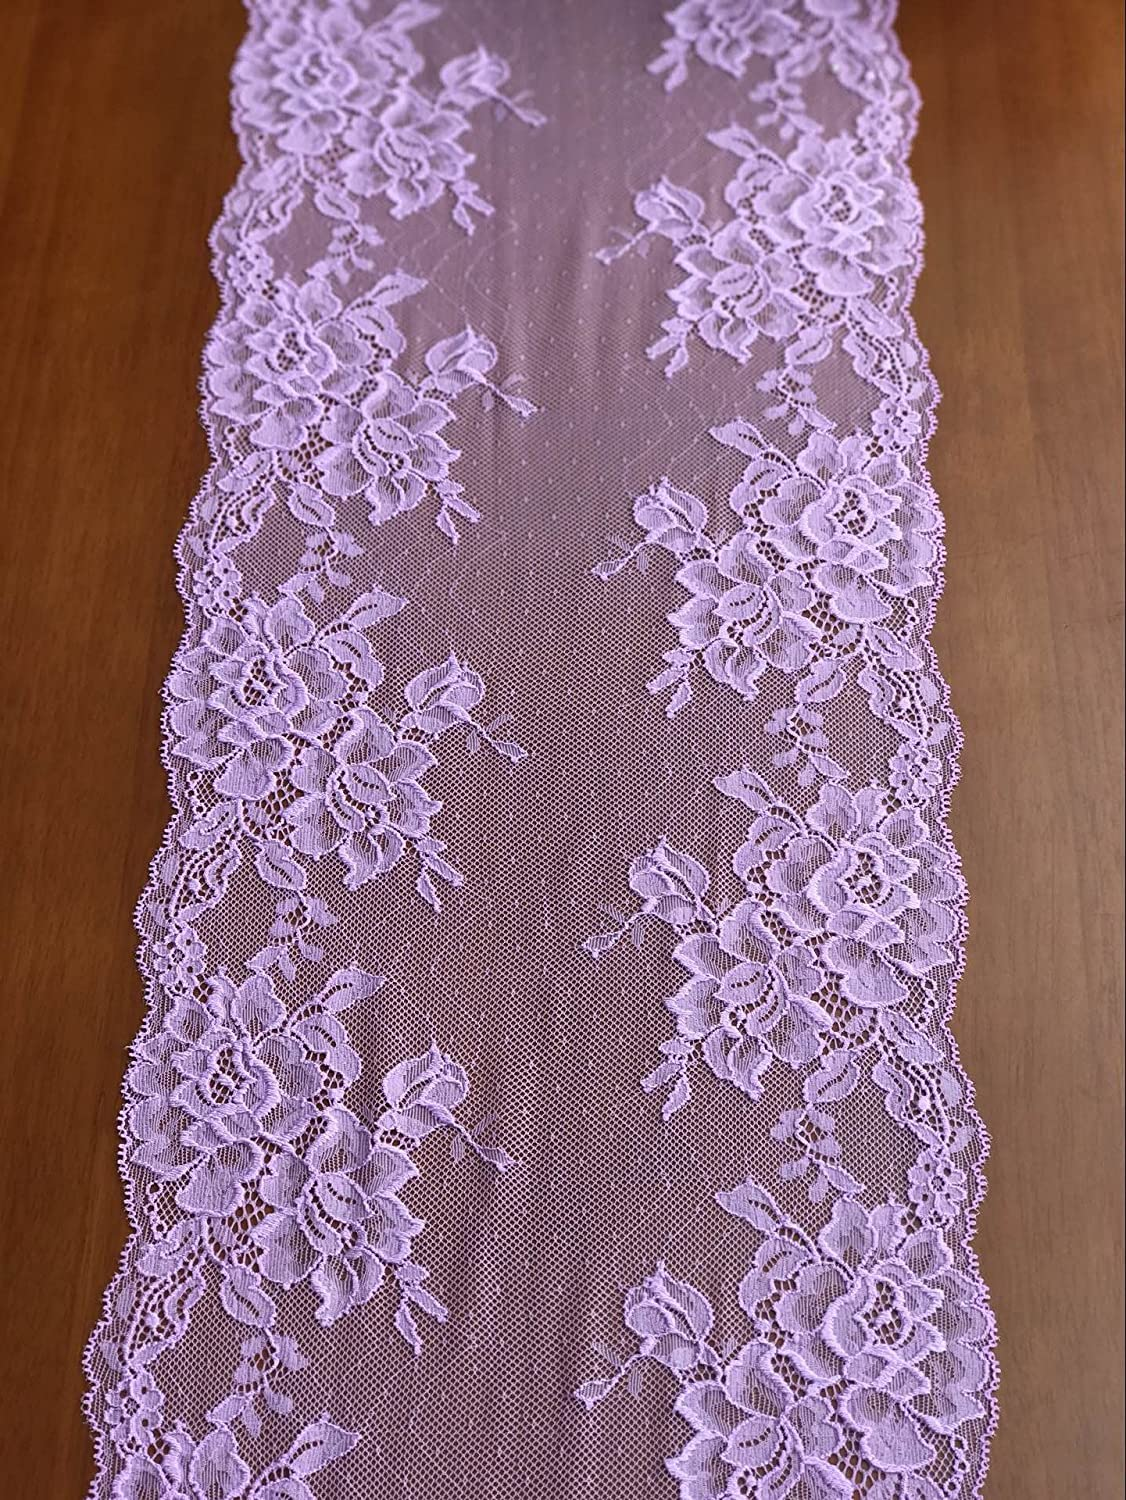 Lace Table Runner Lace Decor Overlay Tabletop Runners R01